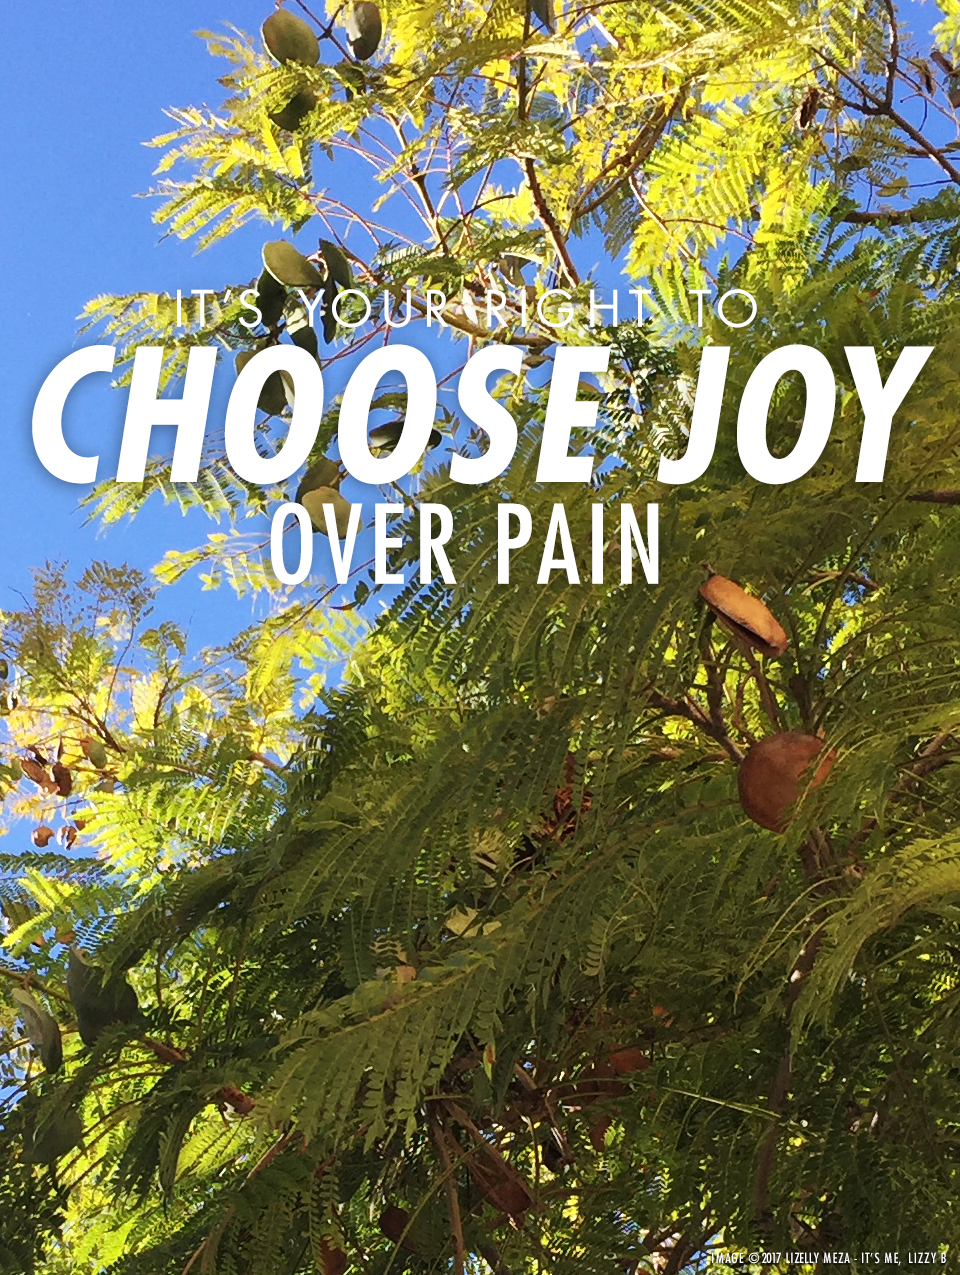 Your Right to Choose Joy Over Pain // It's Me, Lizzy B - Musings on Life, Business, & The Pursuit of Curiosity // Personal blog of Lizelly Meza